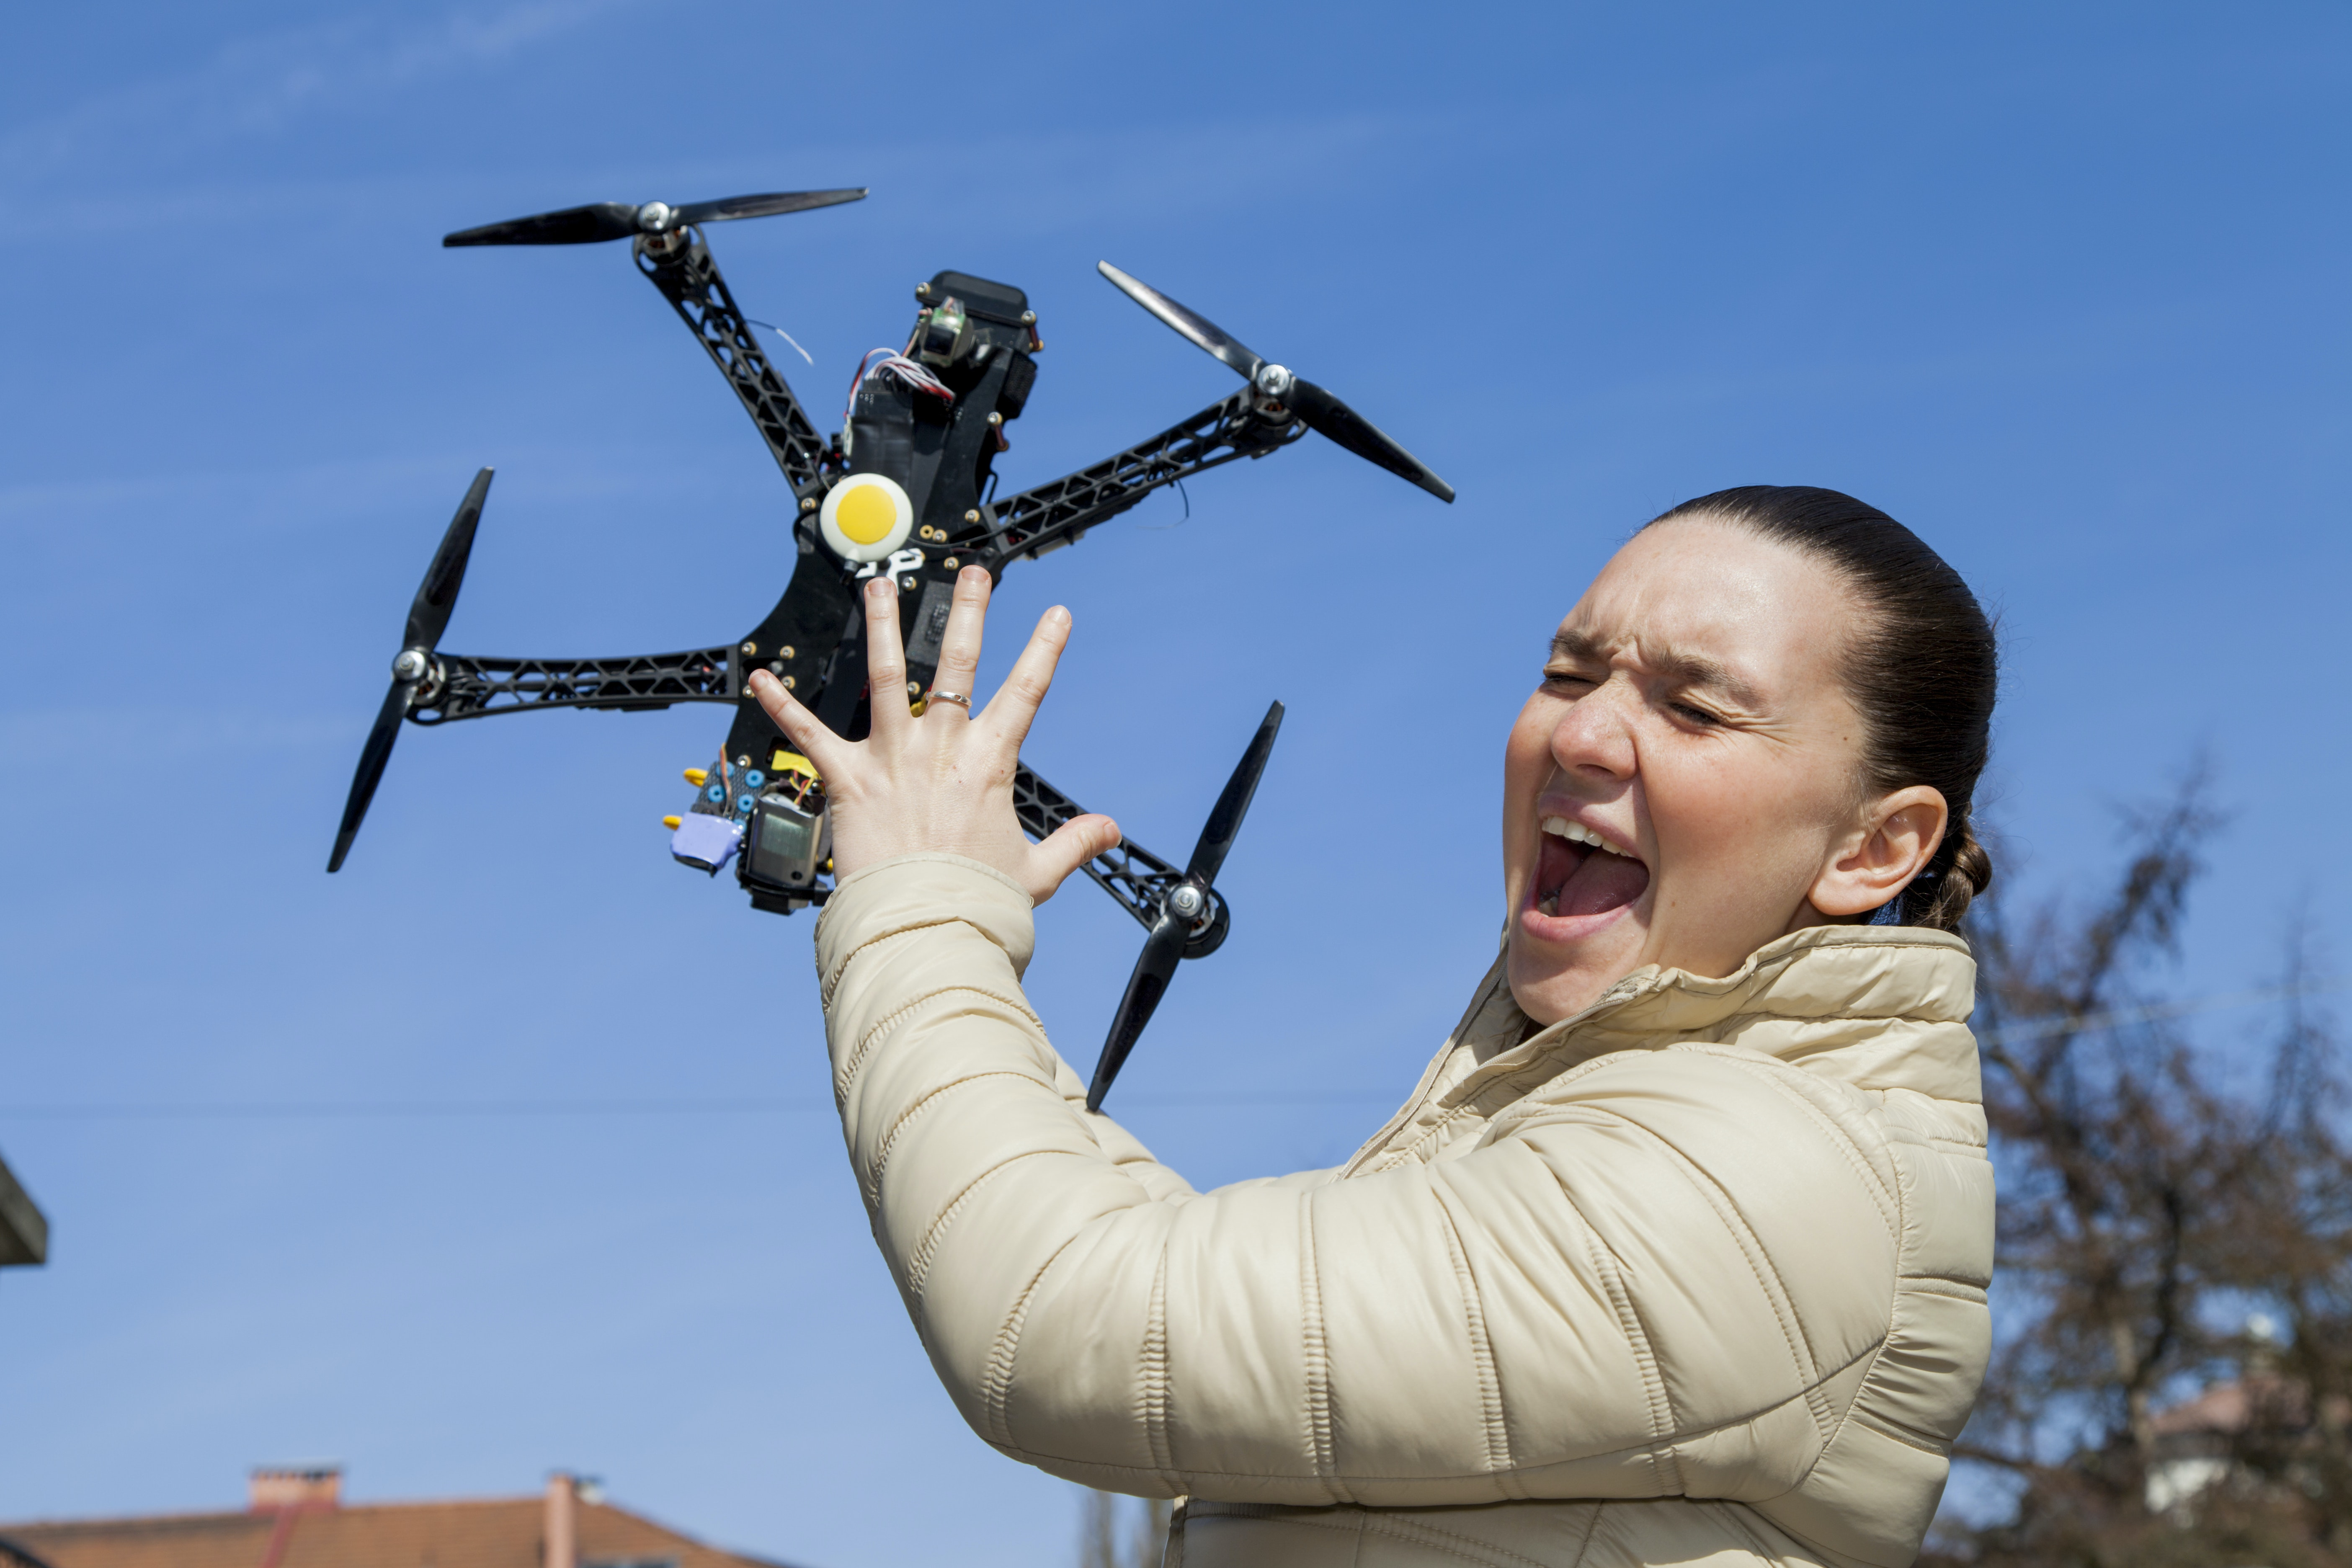 http://theconversation.com/should-we-fear-the-rise-of-drone-assassins-two-experts-debate-87699